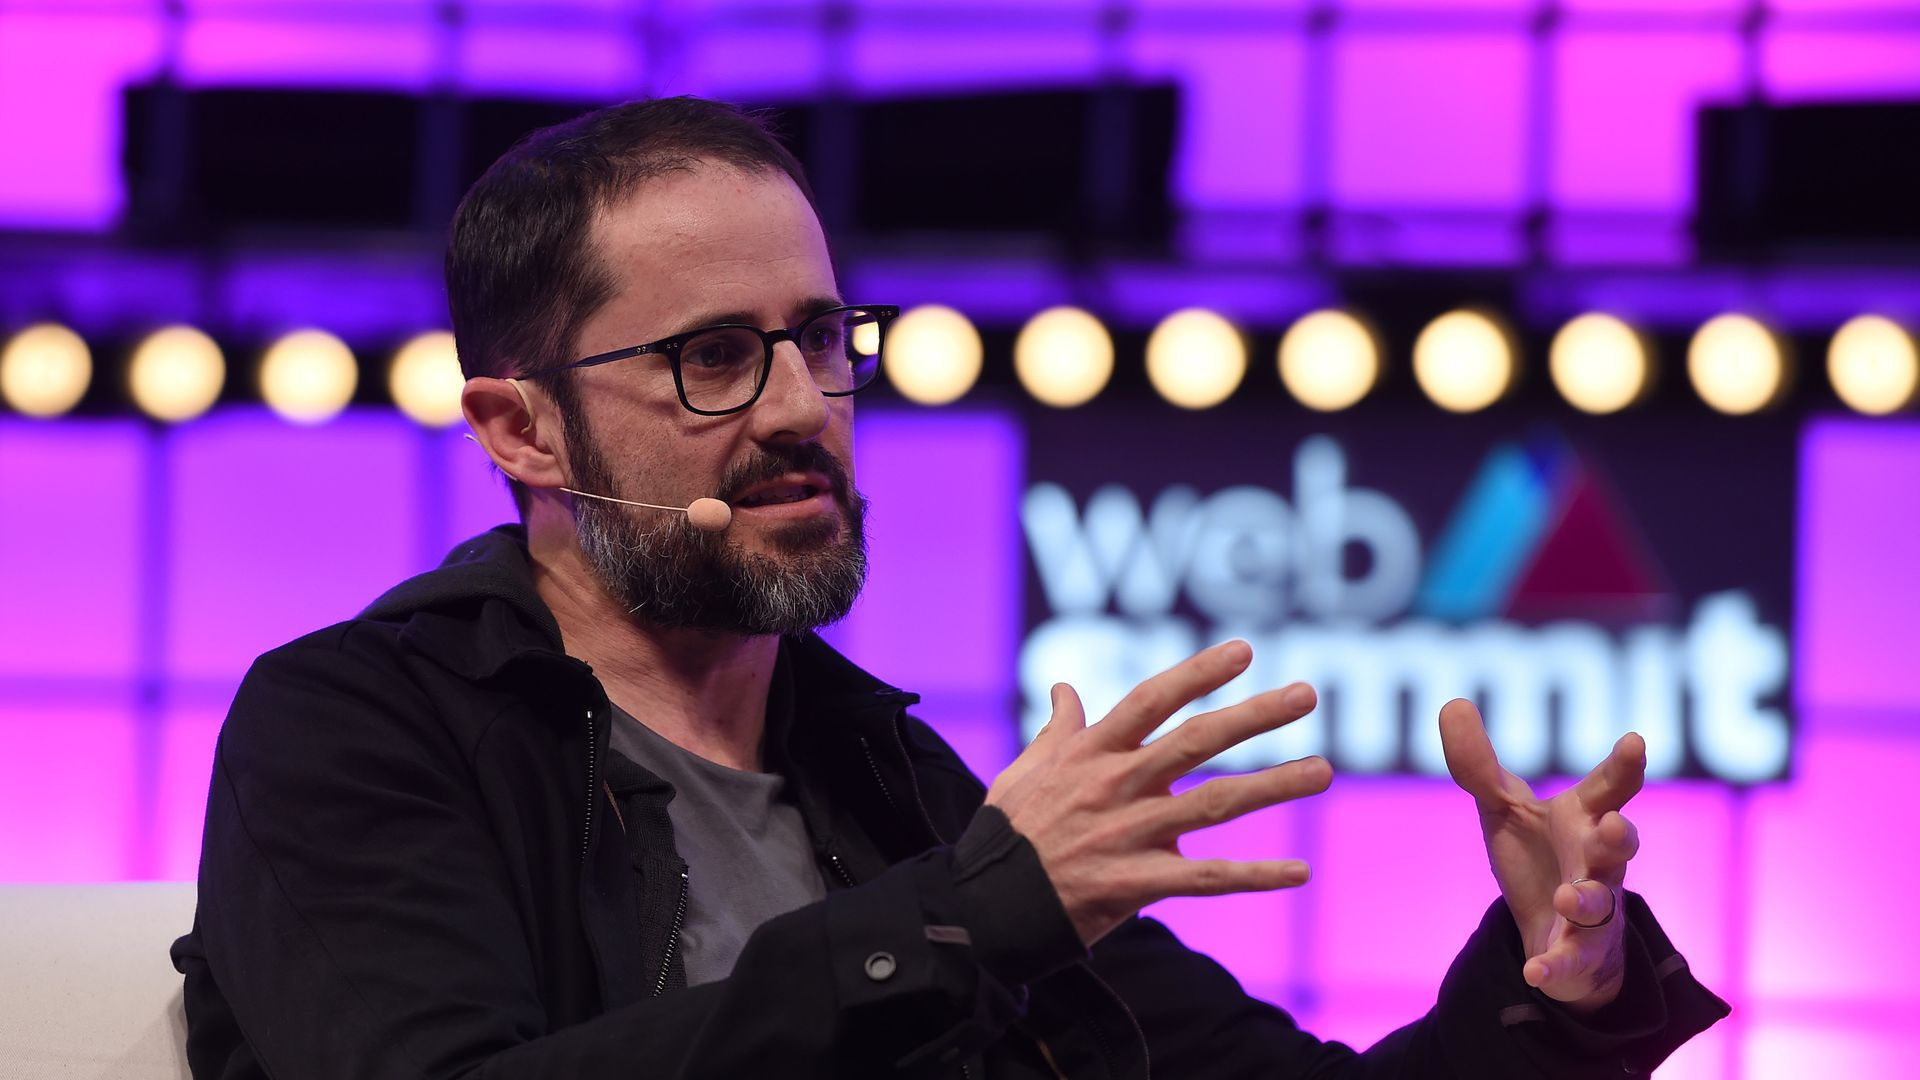 Photo of Twitter co-founder Ev Williams speaking on conference stage.